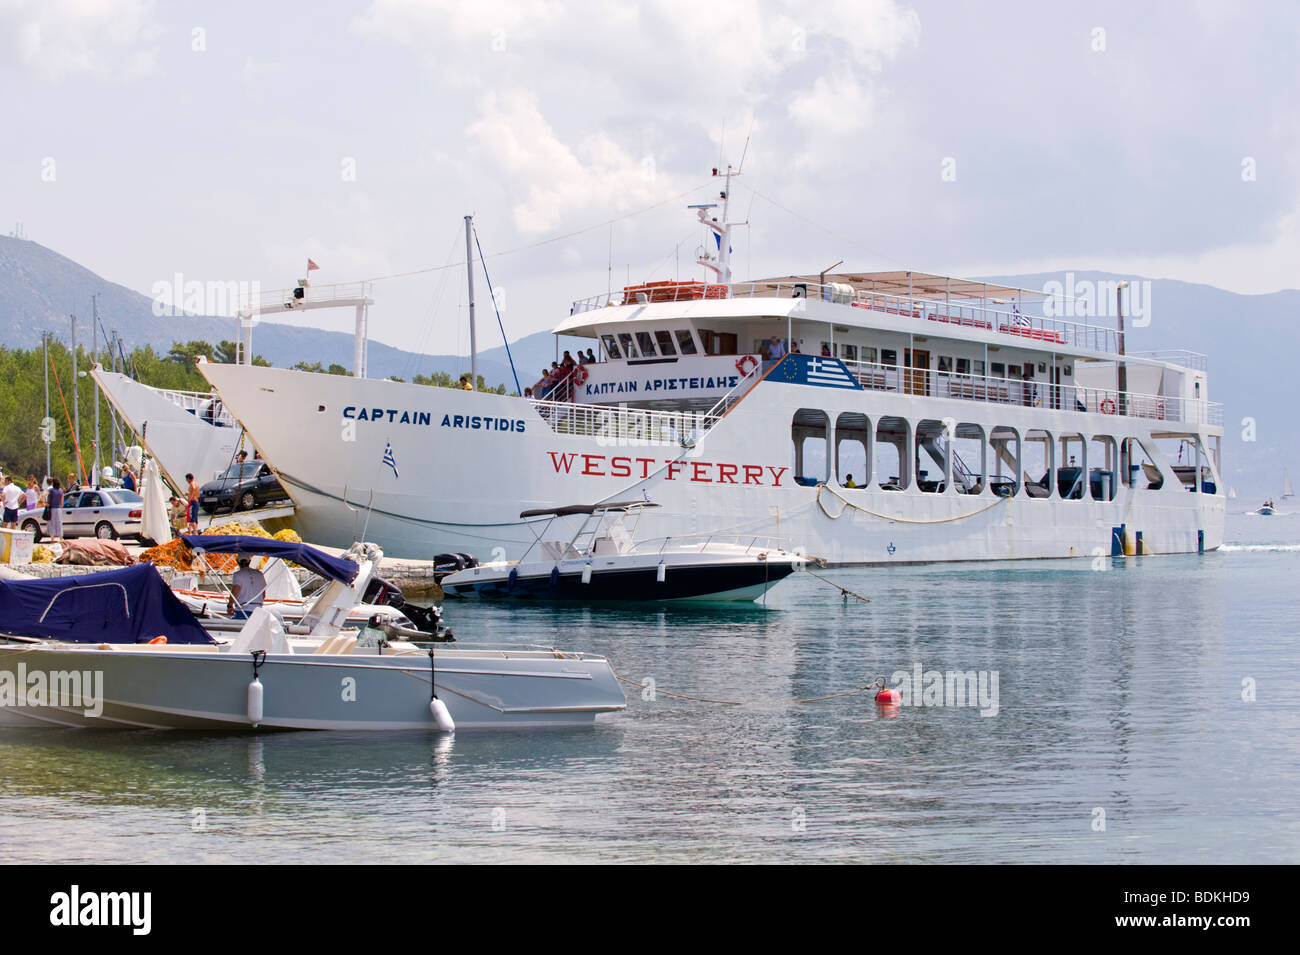 Passenger and car ferry disembarking in harbour at Fiskardo on the Greek Mediterranean island of Kefalonia Greece - Stock Image